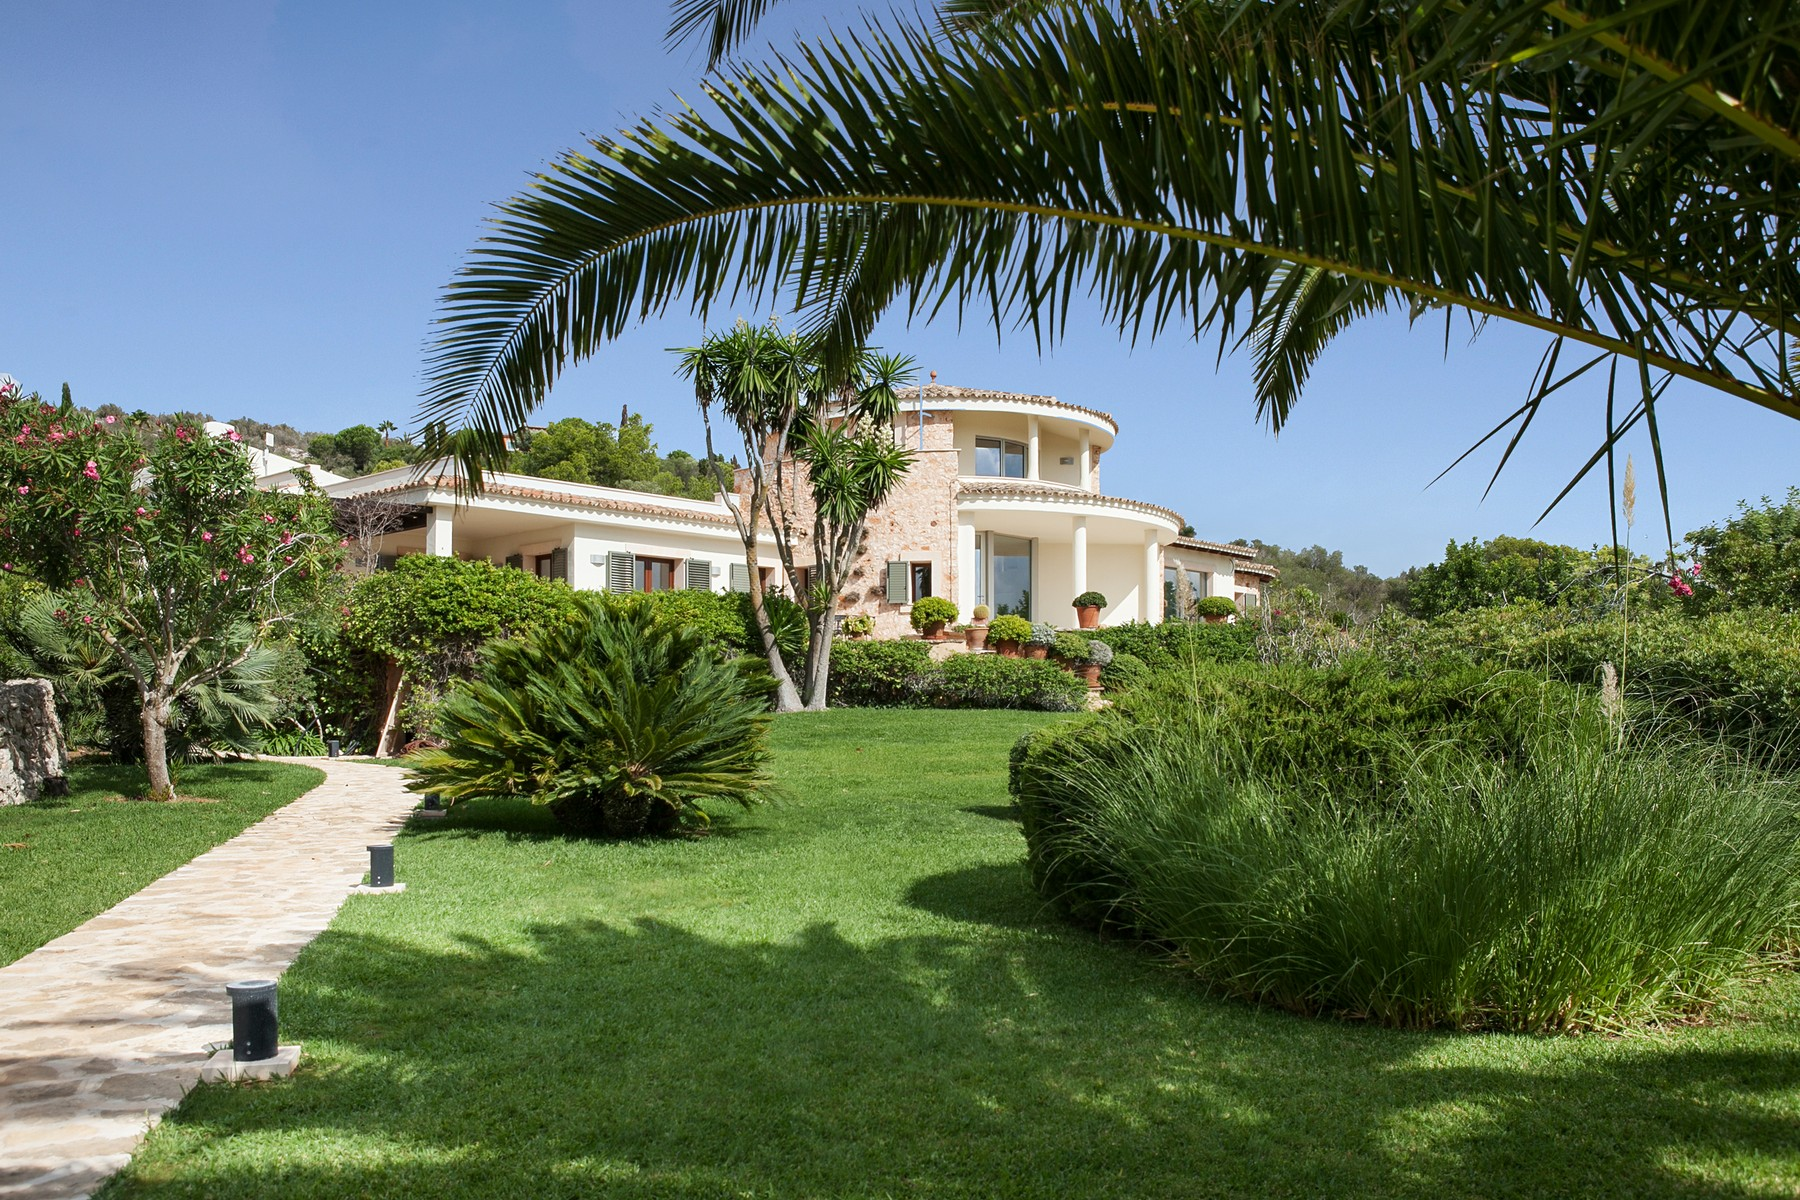 Single Family Home for Sale at Country Estate with sea views near Porto Colom es caritxo, Porto Colom, Mallorca, 07669 Spain